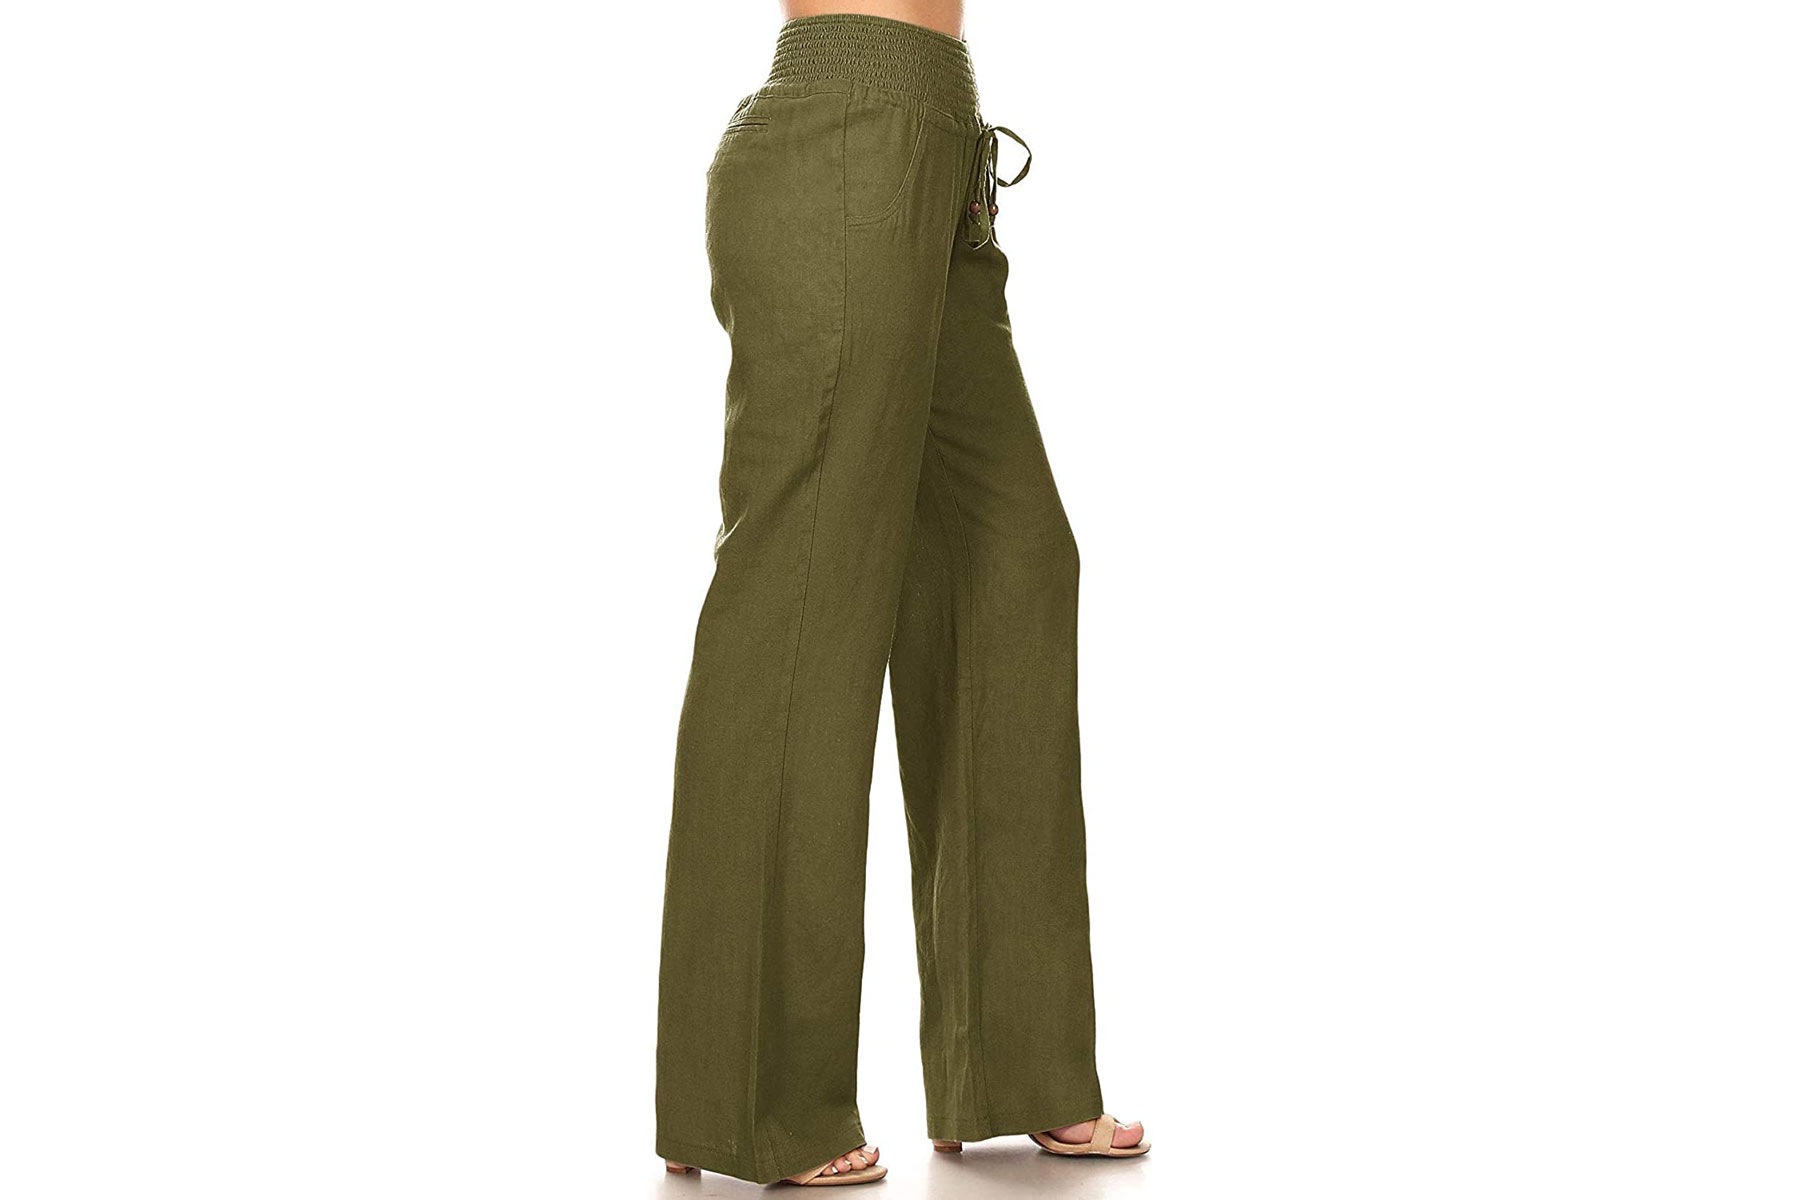 Dark green linen pants